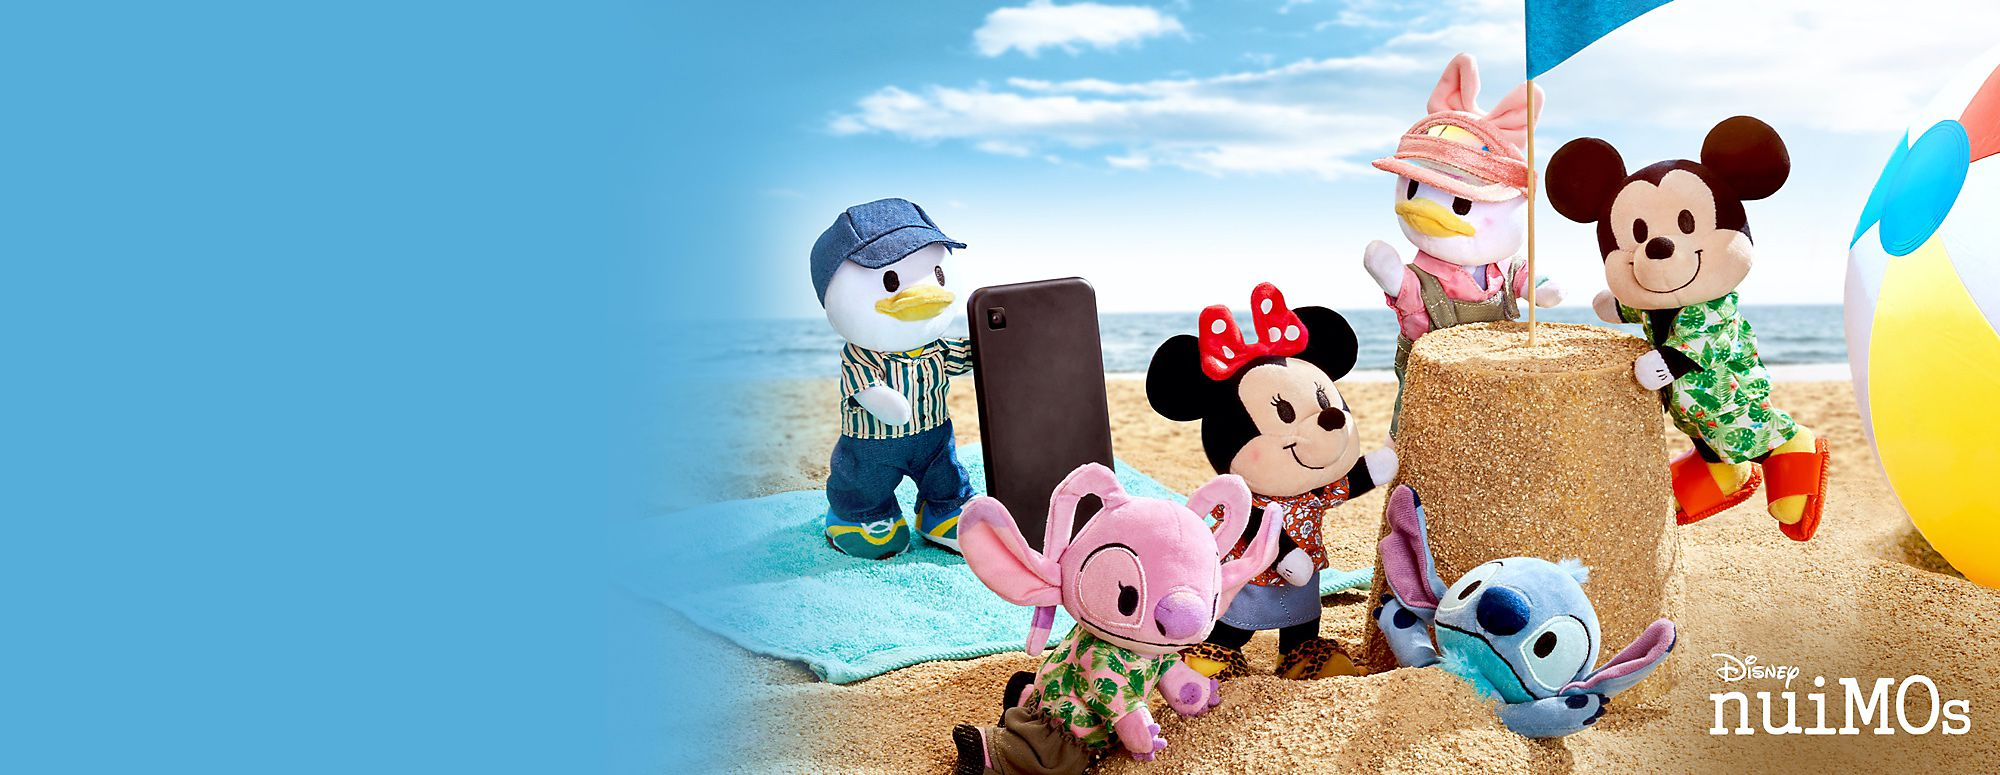 "Wave ""Hello"" to Summer Disney nuiMOs Soft Toy Styles! Style your Disney nuiMos with the latest collections inspired by the hottest fashions SHOP NOW"